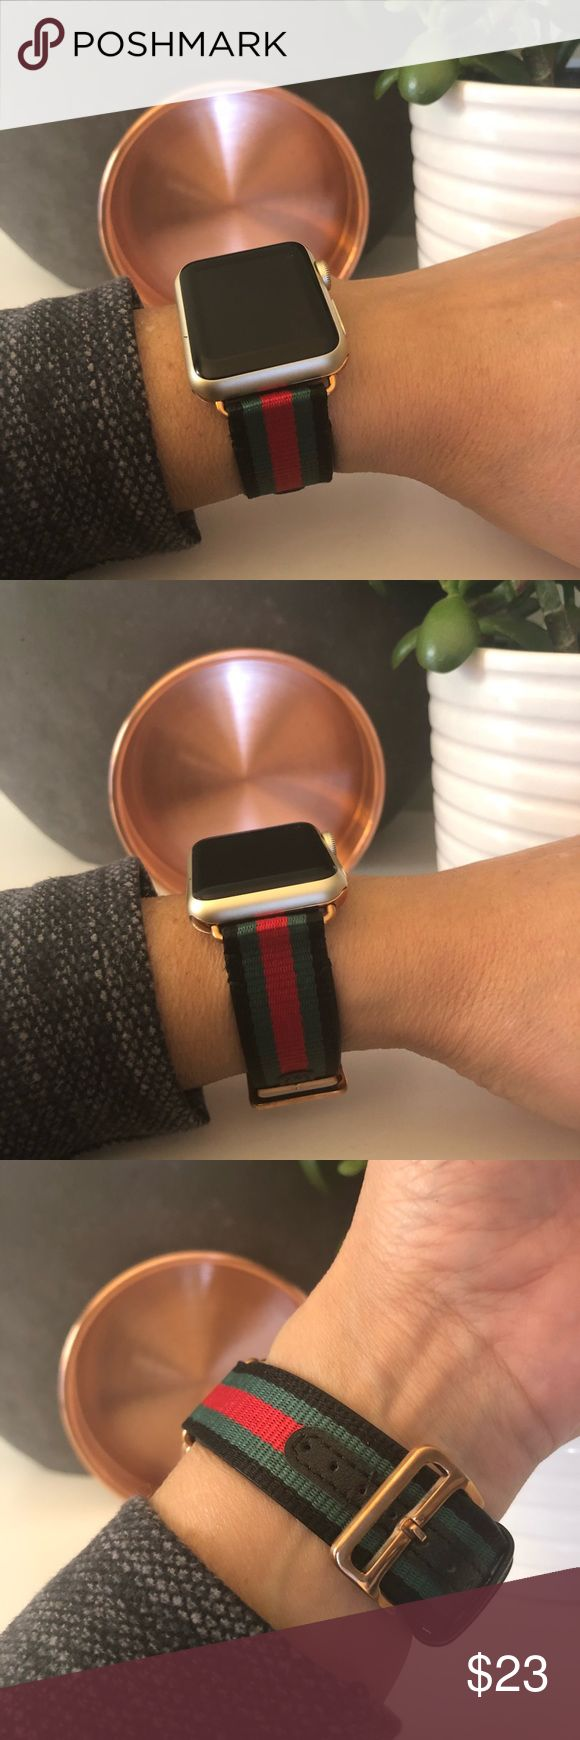 🌸ROSE GOLD Black, Red & Green Apple Watch Band High quality canvas band with leather strip and leather lining with ROSE GOLD adapters. It comes with 38mm or 42mm adapters. Please select your size when you purchase. The adapters fit the Apple Watch 1, 2, 3 and Sport.   I also have other band colors, hardware colors and styles in my closet. Check them out!   I offer 15% off if you buy two or more! Please add BOTH items to the bundle for the discount to automatically apply.    Only the band is…